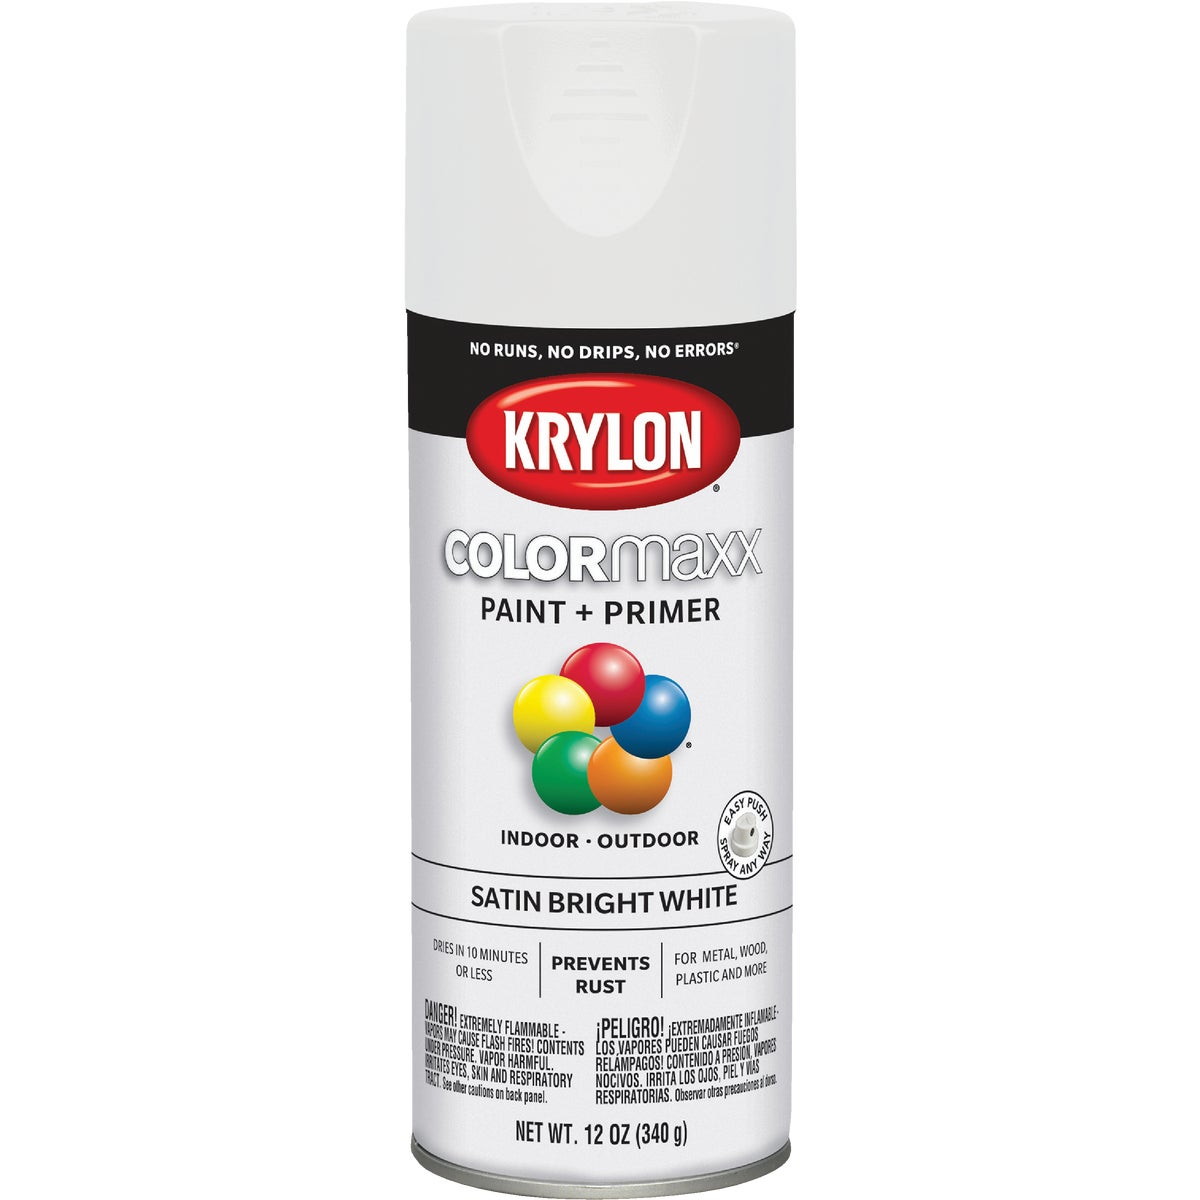 SAT BRHT WHT SPRAY PAINT - 53517 by Krylon/consumer Div